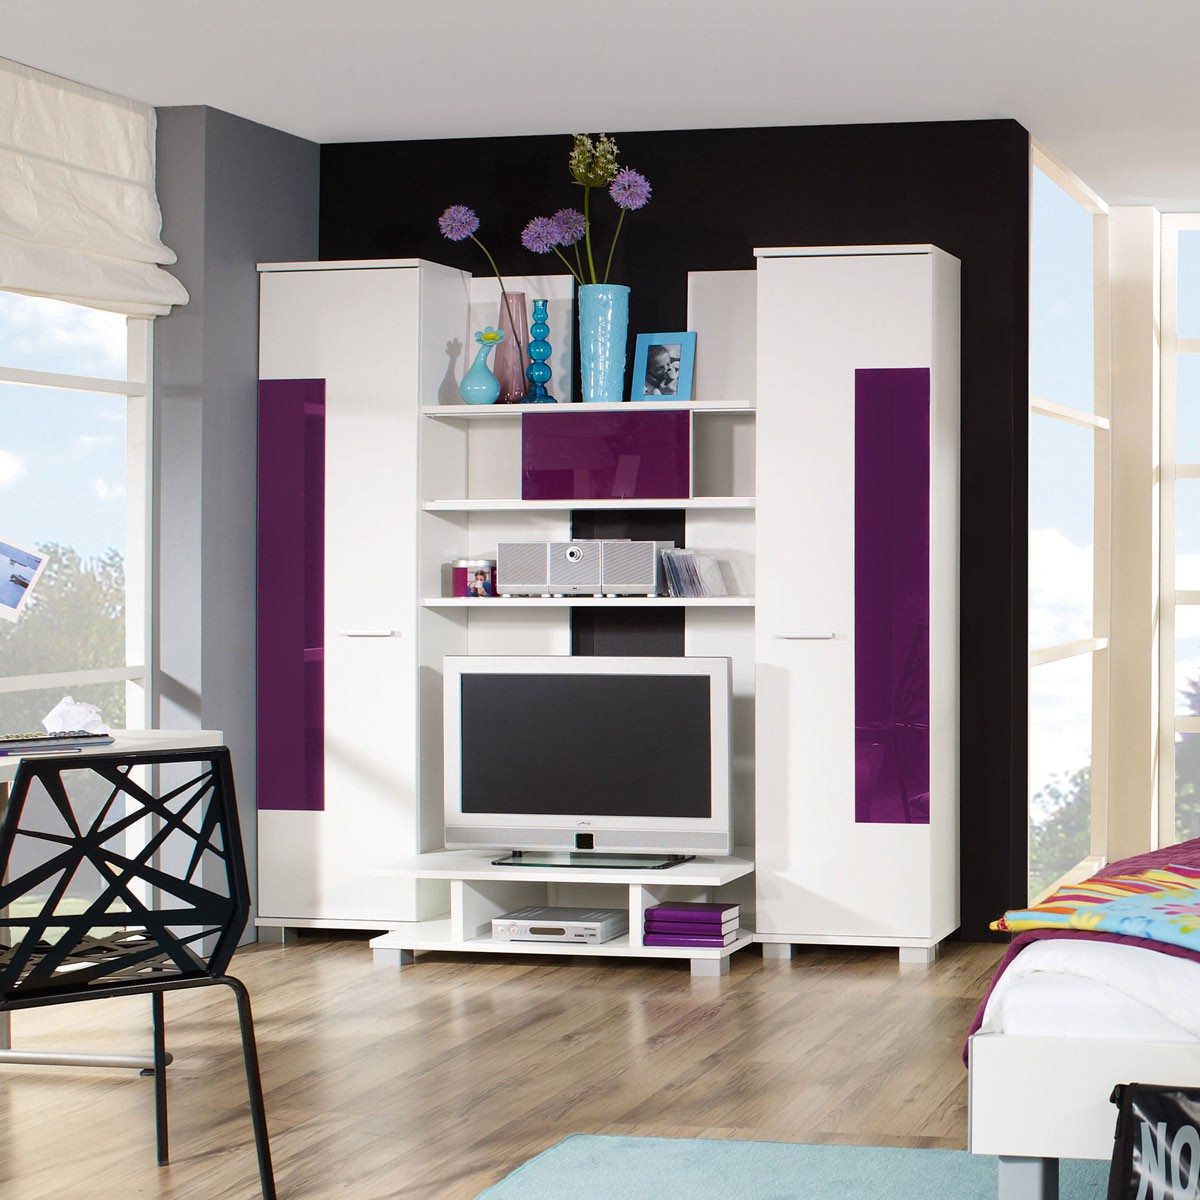 tv wohnwand anbauwand schrankwand in weiss und brombeere. Black Bedroom Furniture Sets. Home Design Ideas